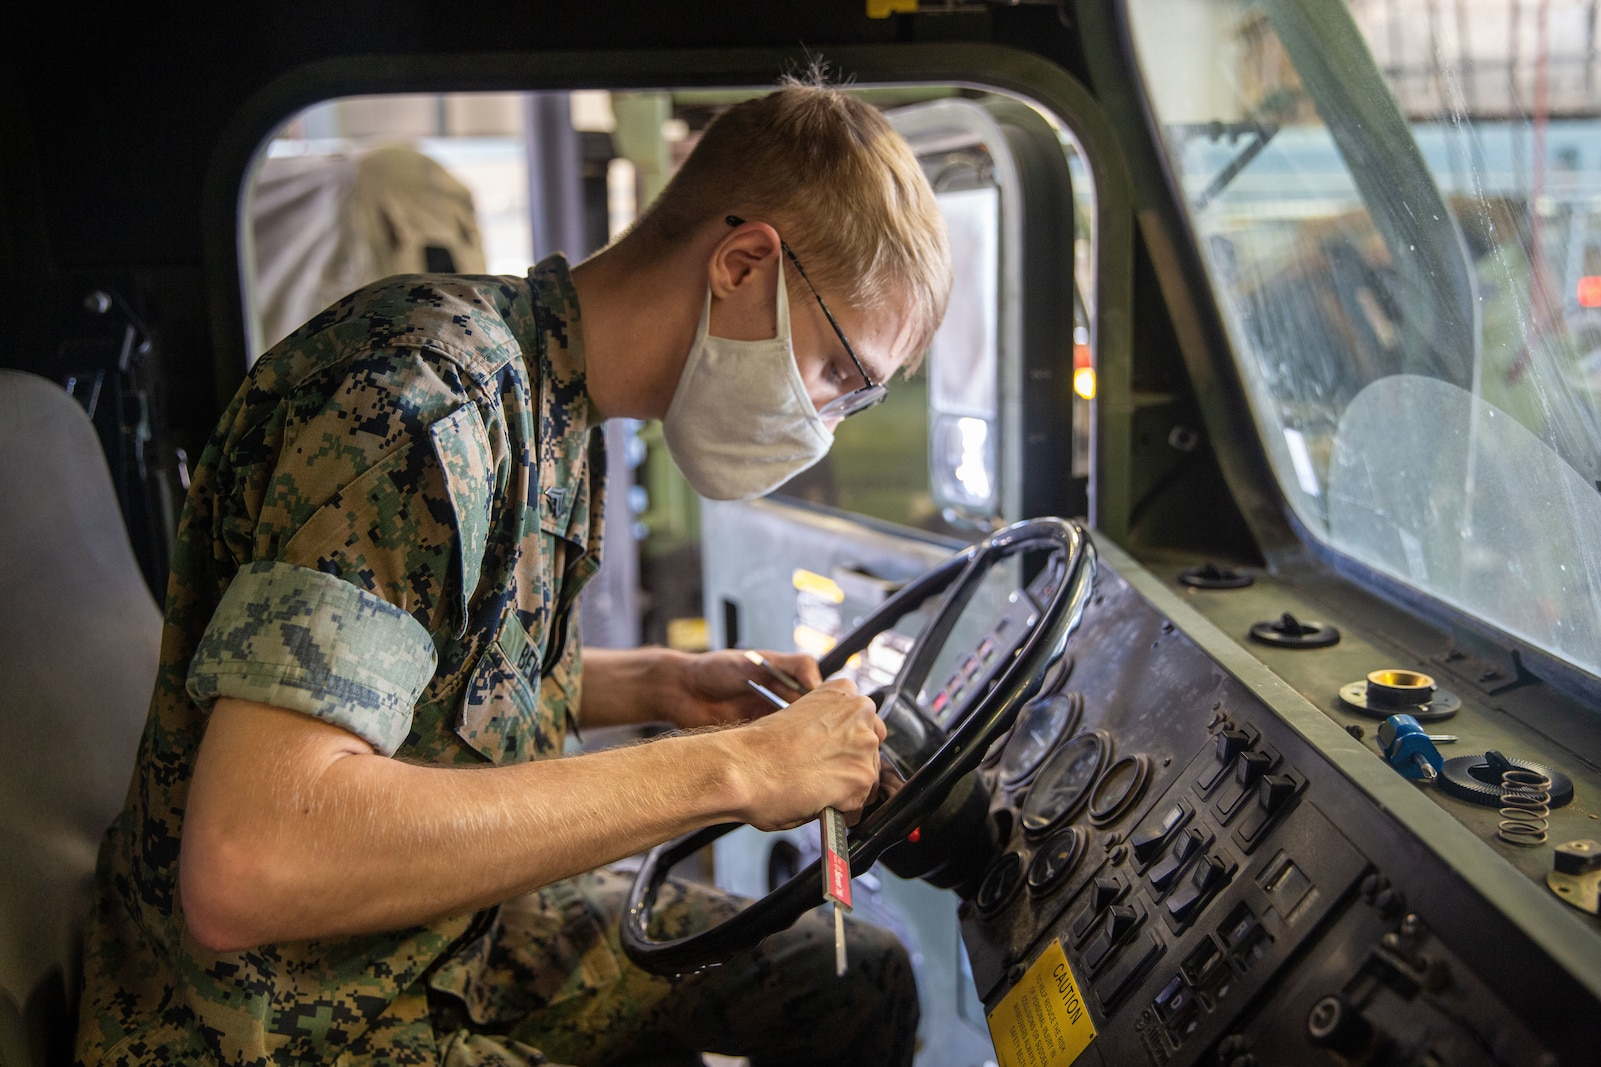 Cpl. Aiden Bemis, a digital manufacturing engineer with 1st Supply Battalion, 1st Marine Logistics Group, I Marine Expeditionary Force, measures the width of a steering wheel column at Marine Corps Base Camp Pendleton, April 29, 2021.